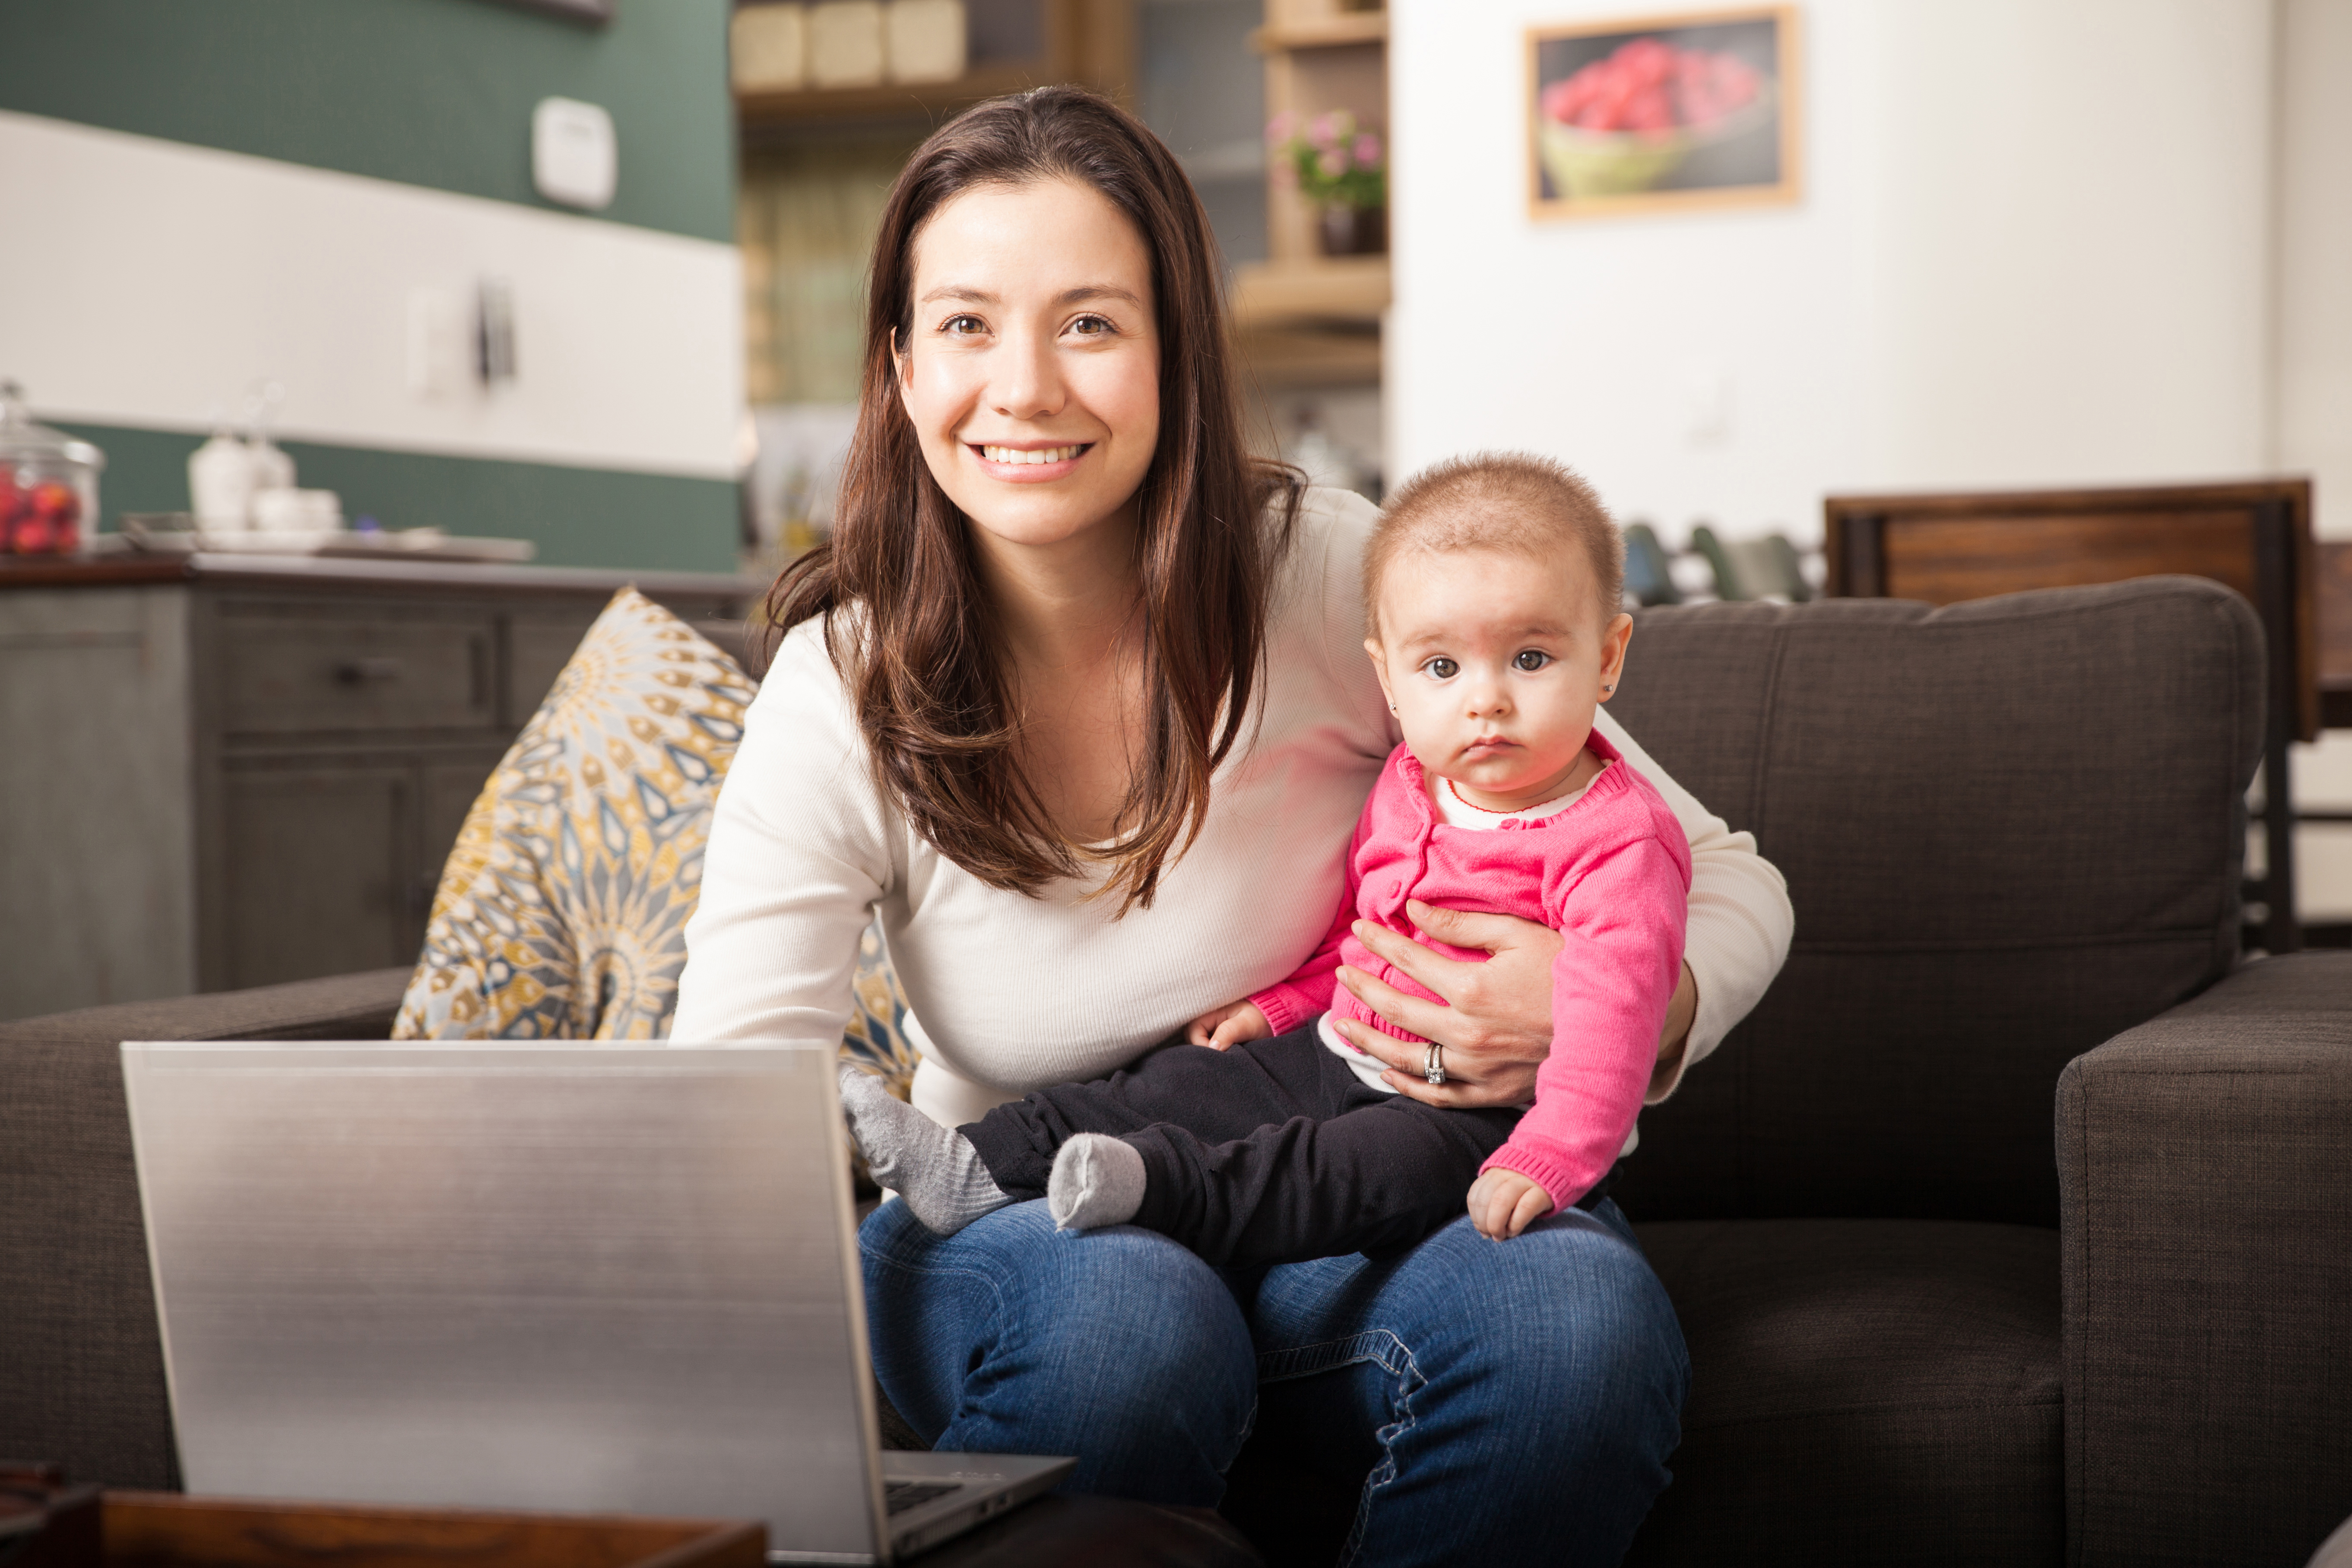 montenegro single parents #1 dating site for single parents this is the world's first and best dating site for single mothers and fathers looking for a long term serious relationshipwe have helped thousands of single parents like yourself make the connection single moms and dads join for dating, relationships, friendships and more in a safe and secure environment.